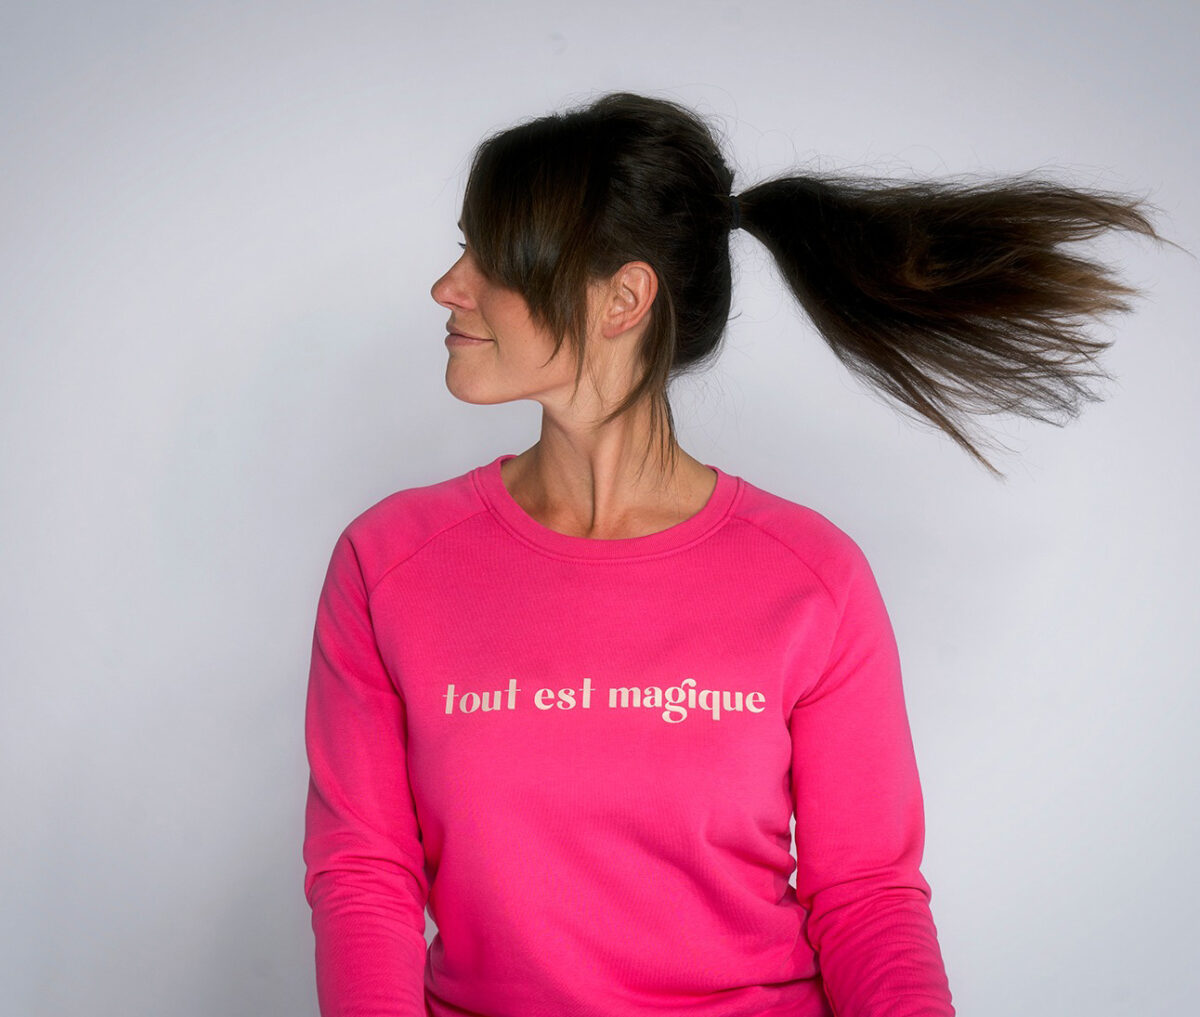 tout est magique - sweater by Mangos on Monday